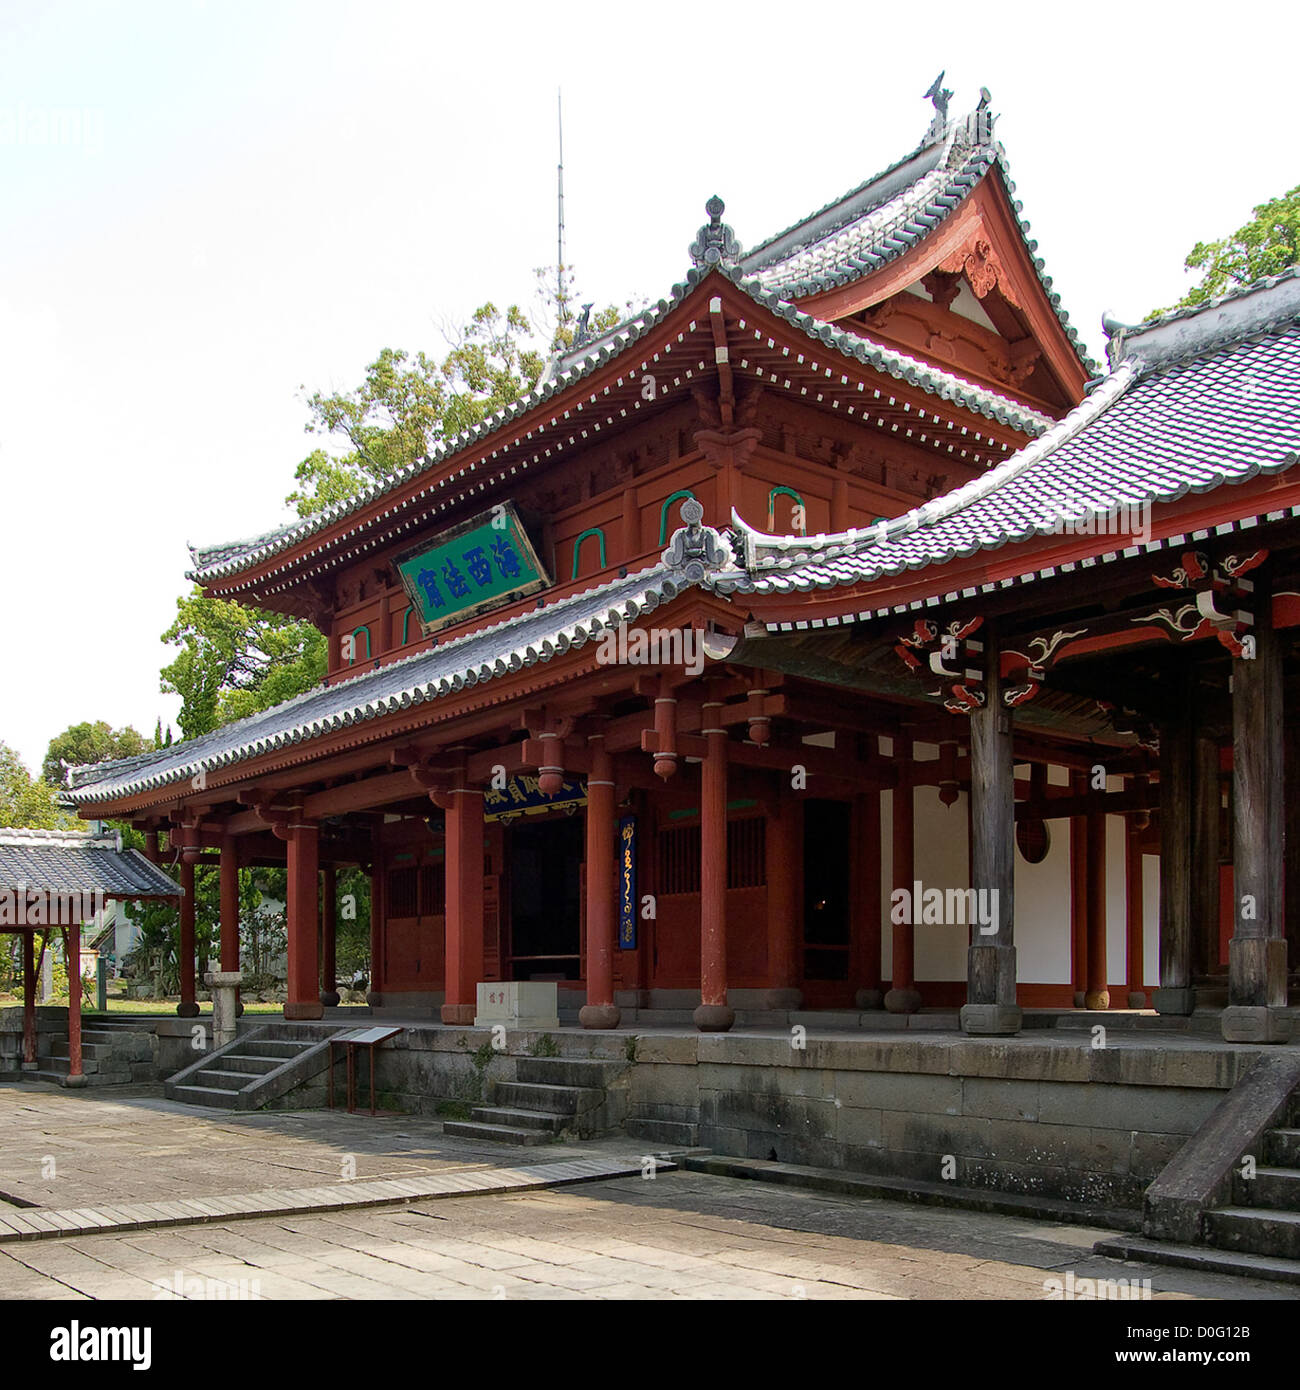 Great Leader's Treasure Hall, Daiyūhōden, at Sōfuku-ji, Nagasaki, Japan, National Treasure 長崎市にある崇福寺の大雄宝殿(国宝) - Stock Image